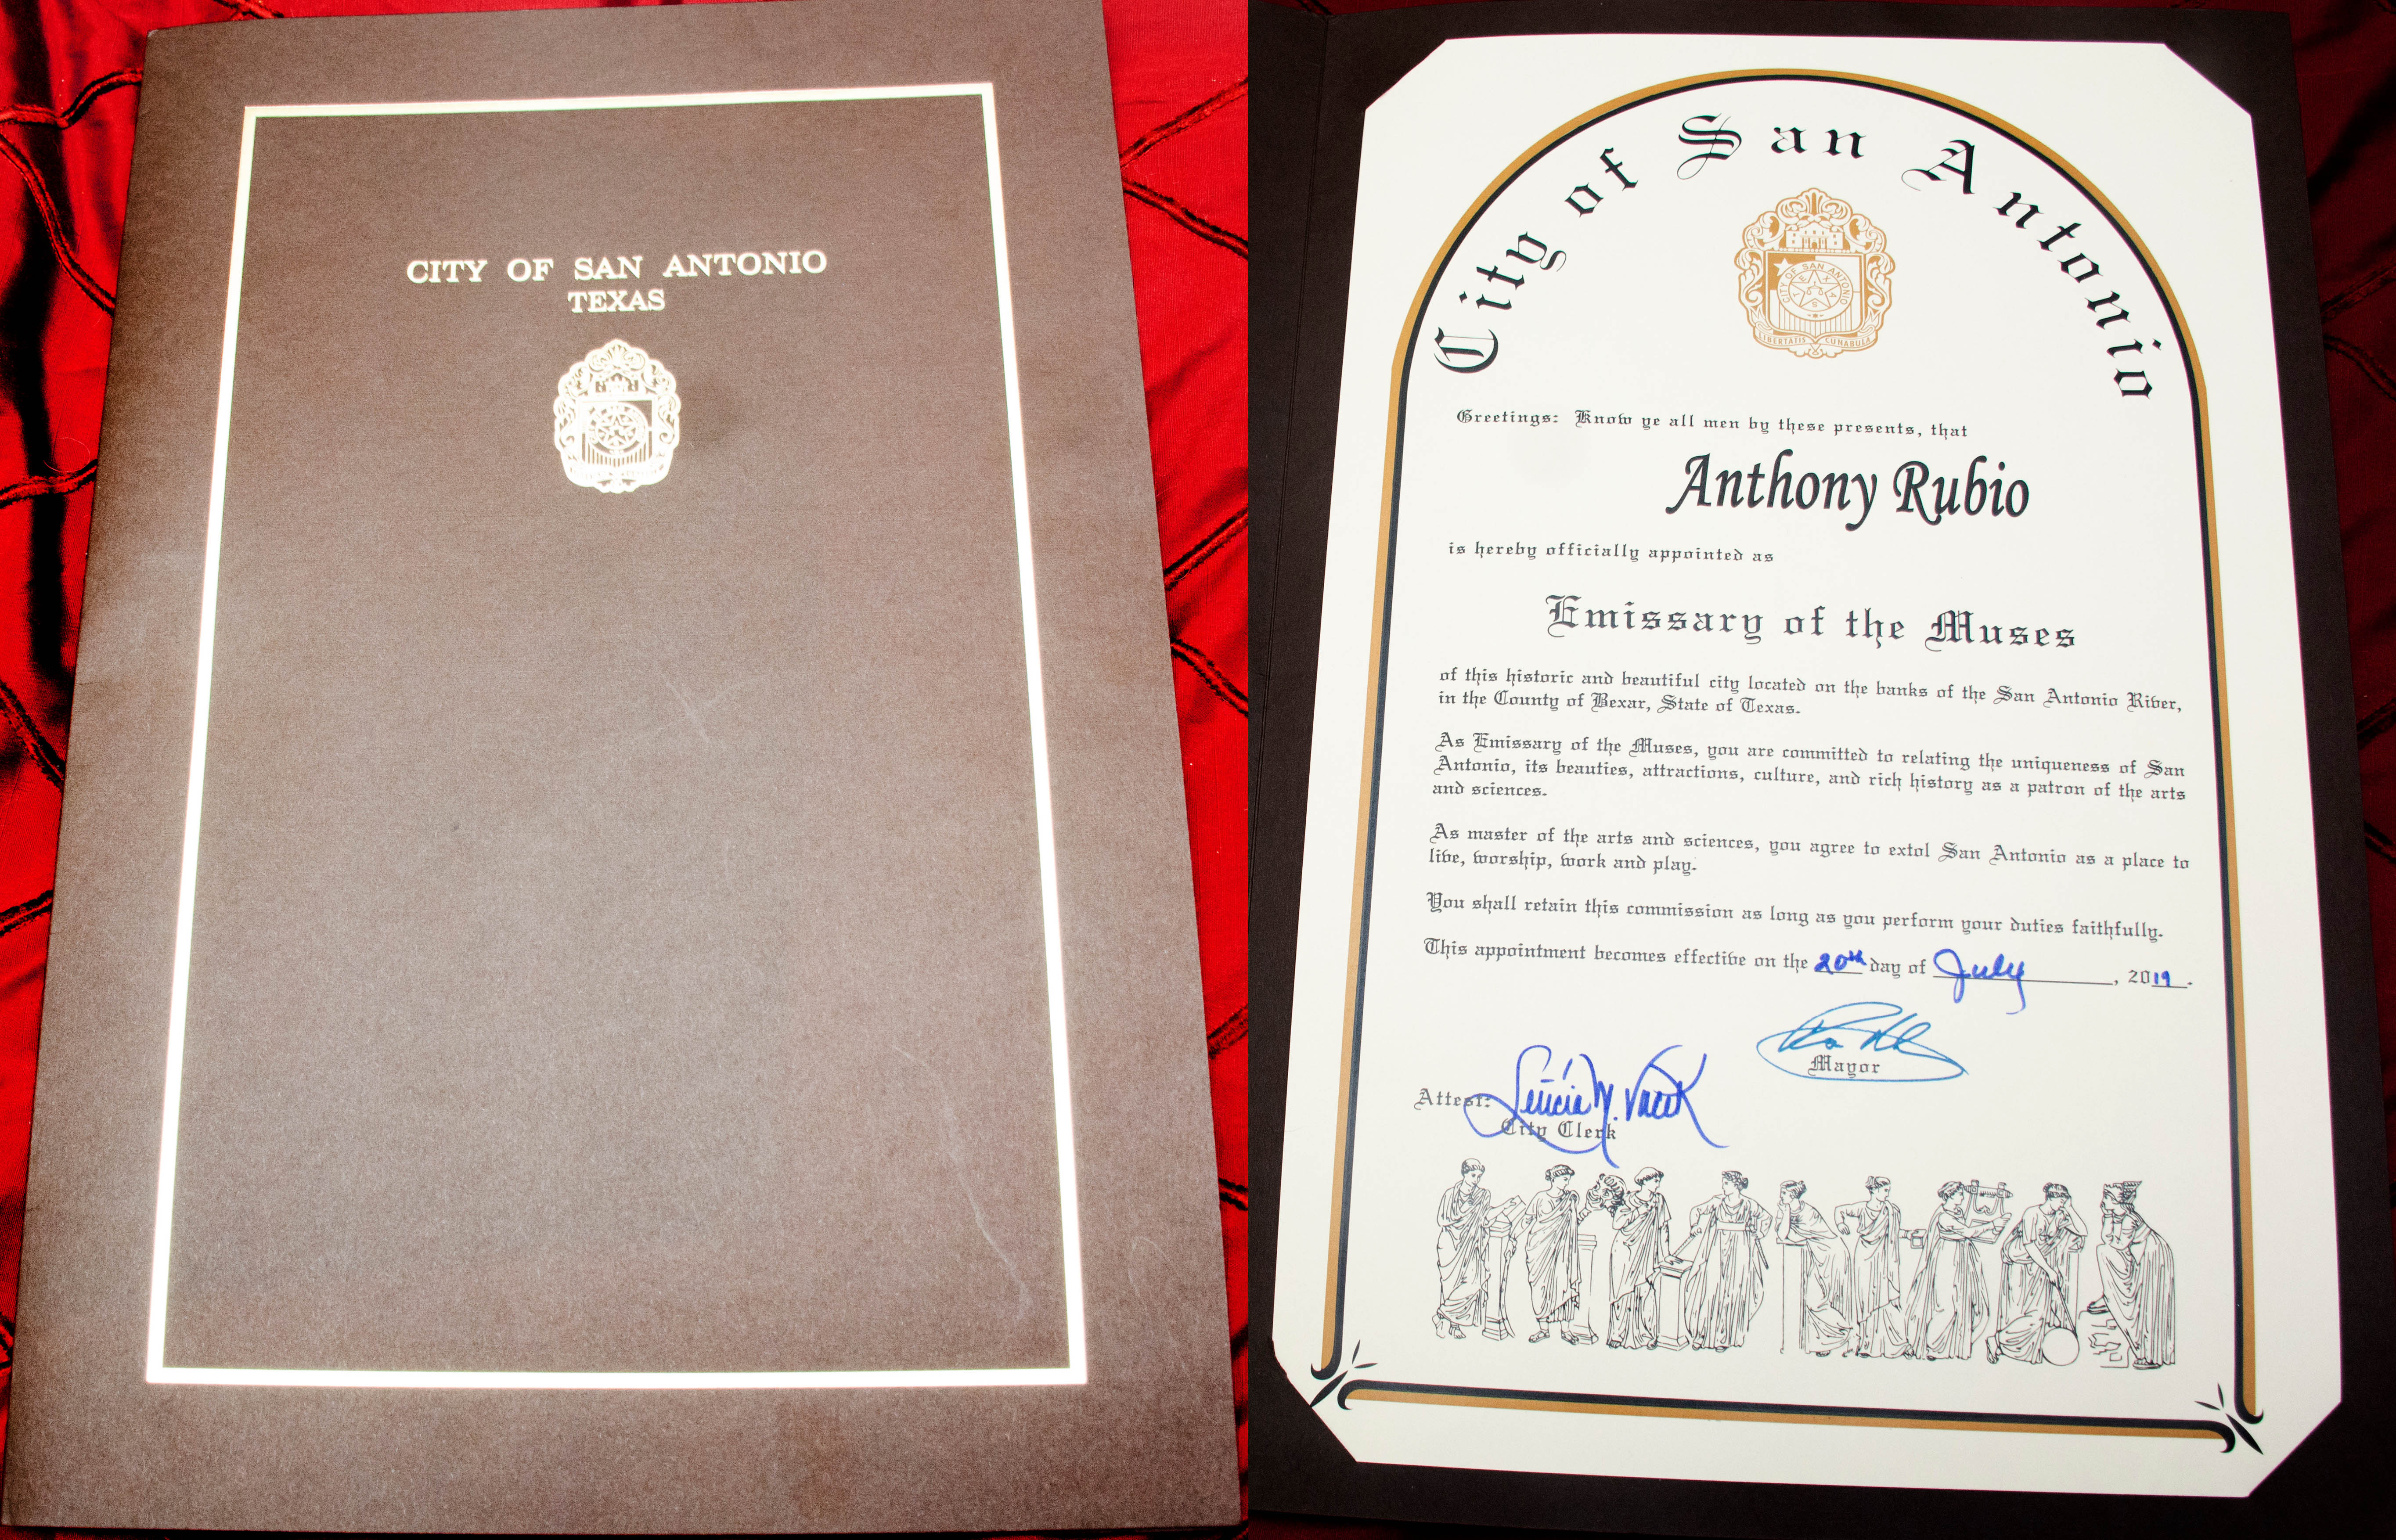 Anthony Rubio receives a Proclamation from San Antonio, Texas